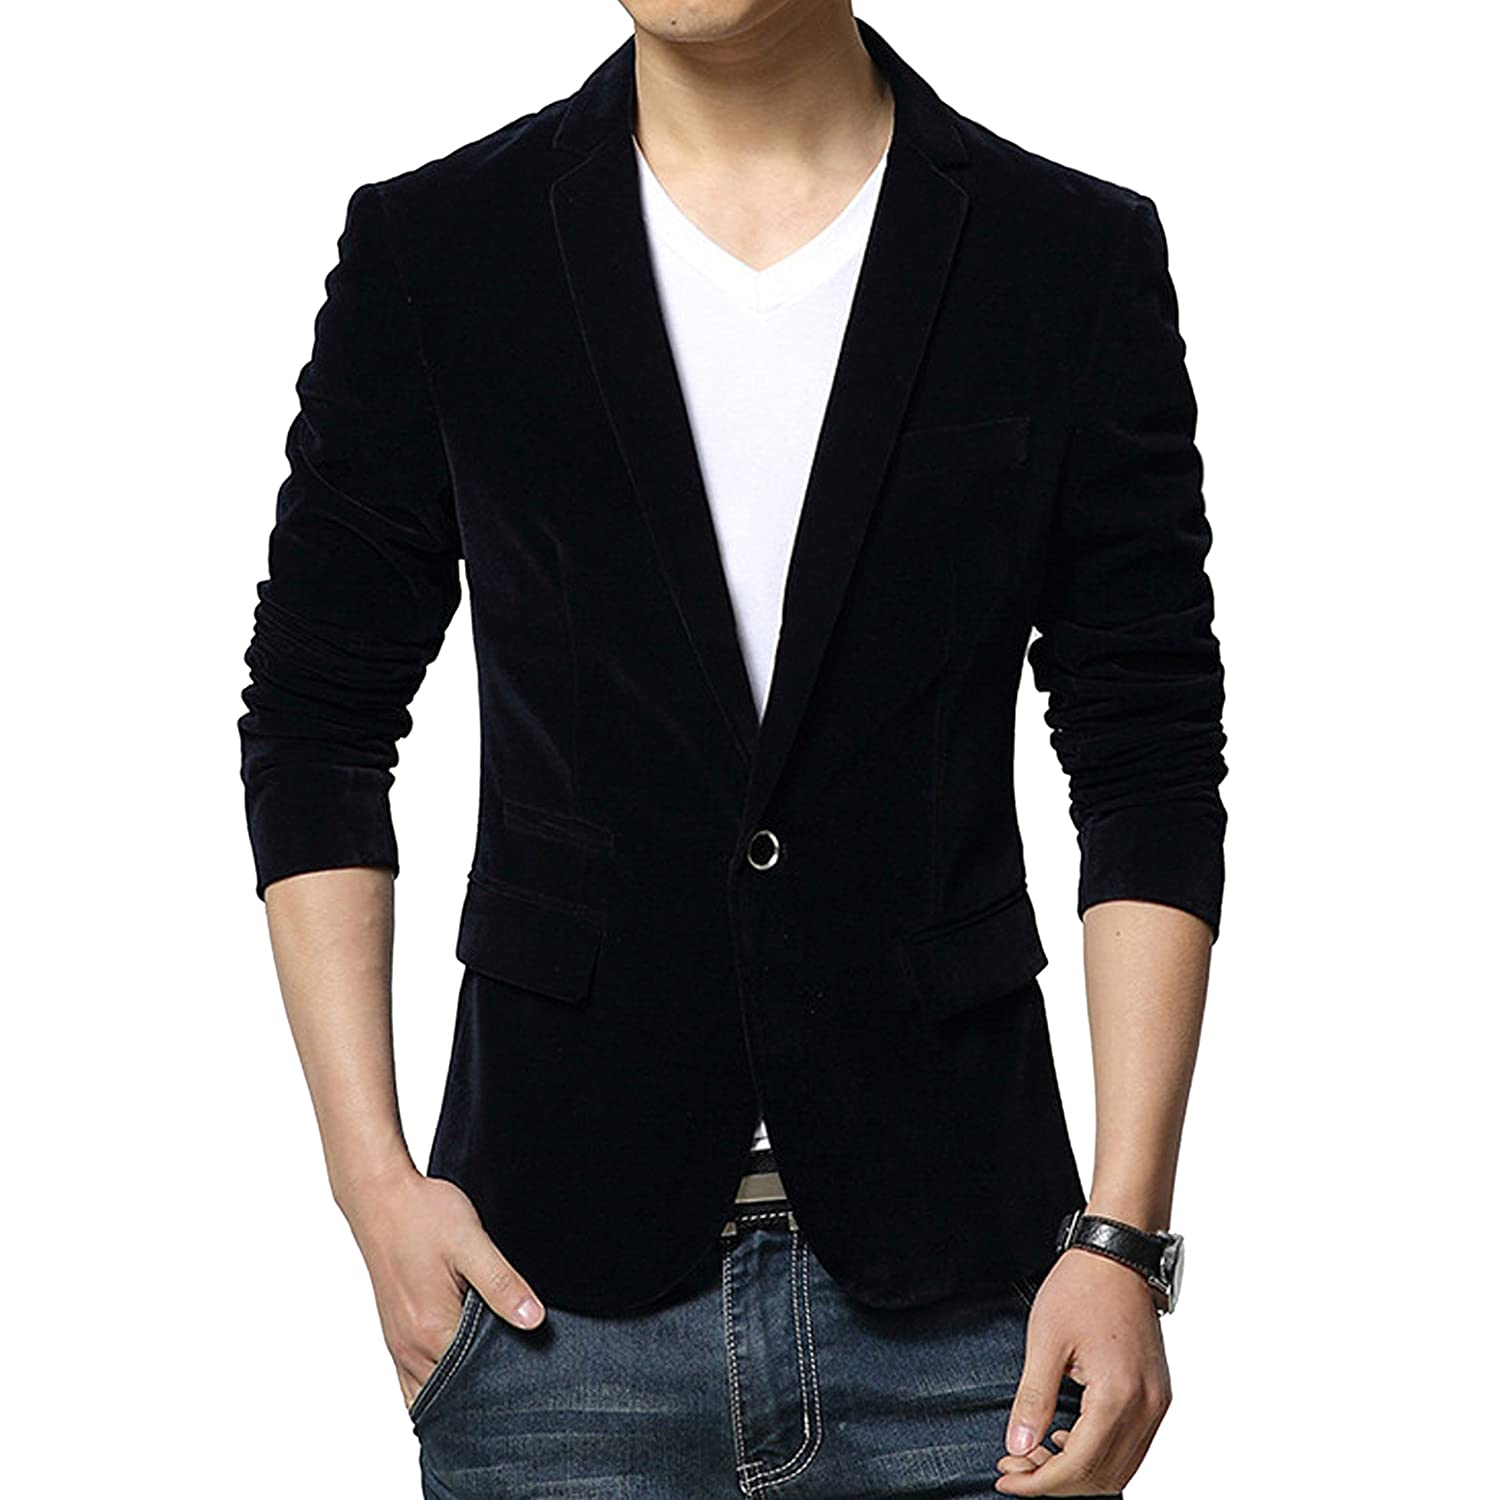 When a fashion blazer is what you seek, unique and stylish is what you'll find to wear with Mezlan Shoes or even devastating style Alligator Shoes. What makes a fashion blazer is the use of unique and fashionable colors, materials and styles that you'll find.